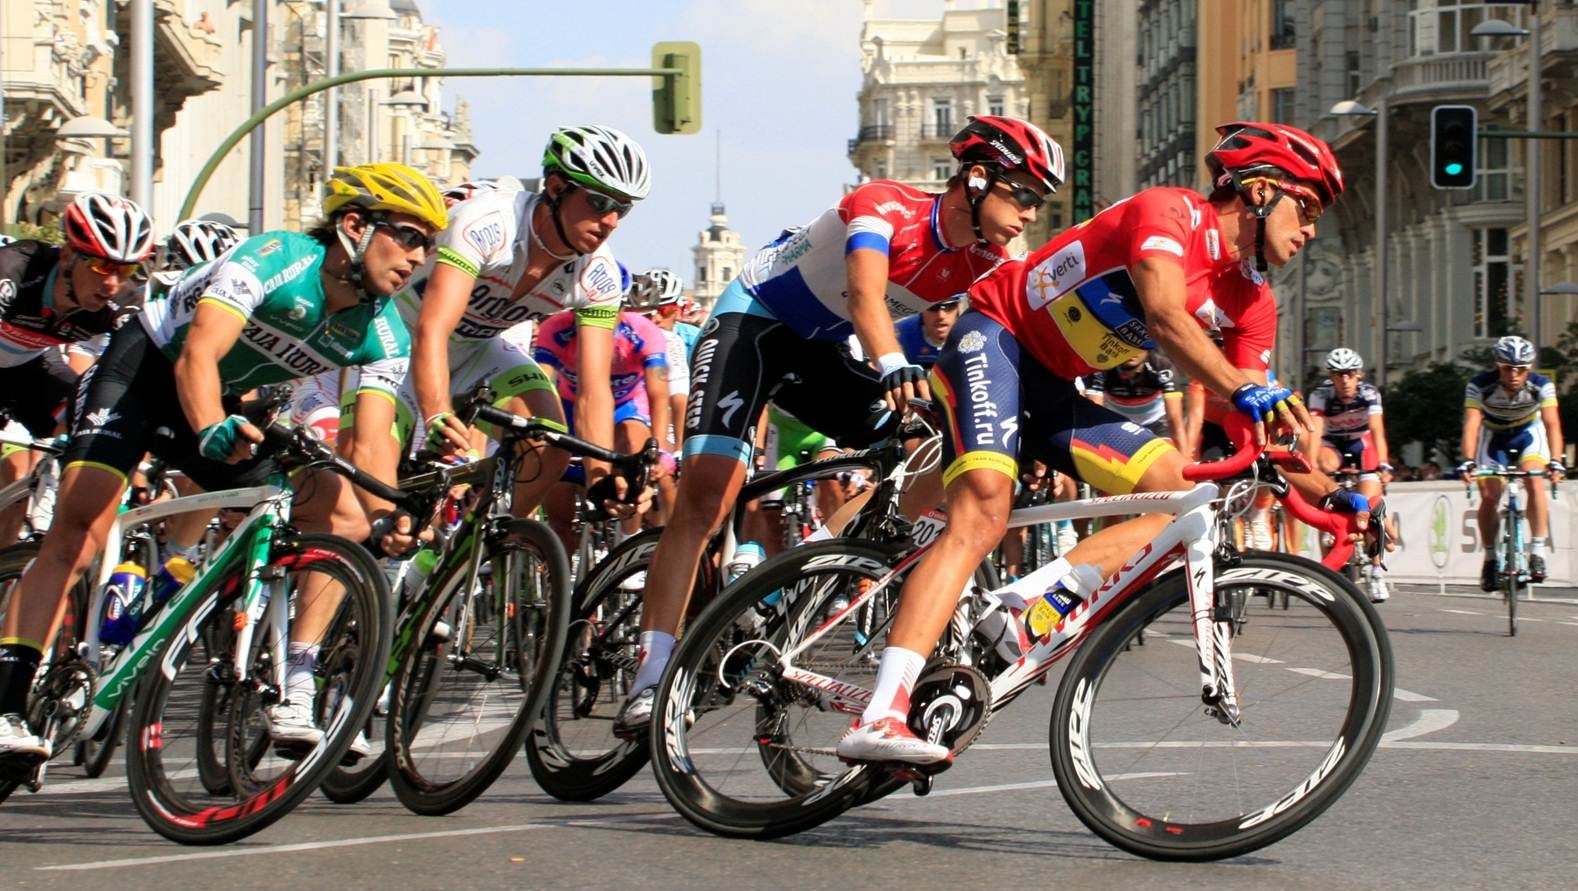 Enthusiasm for cycling  ŠKODA is sponsoring the Vuelta Tour of Spain ... 9ce4ddfe3